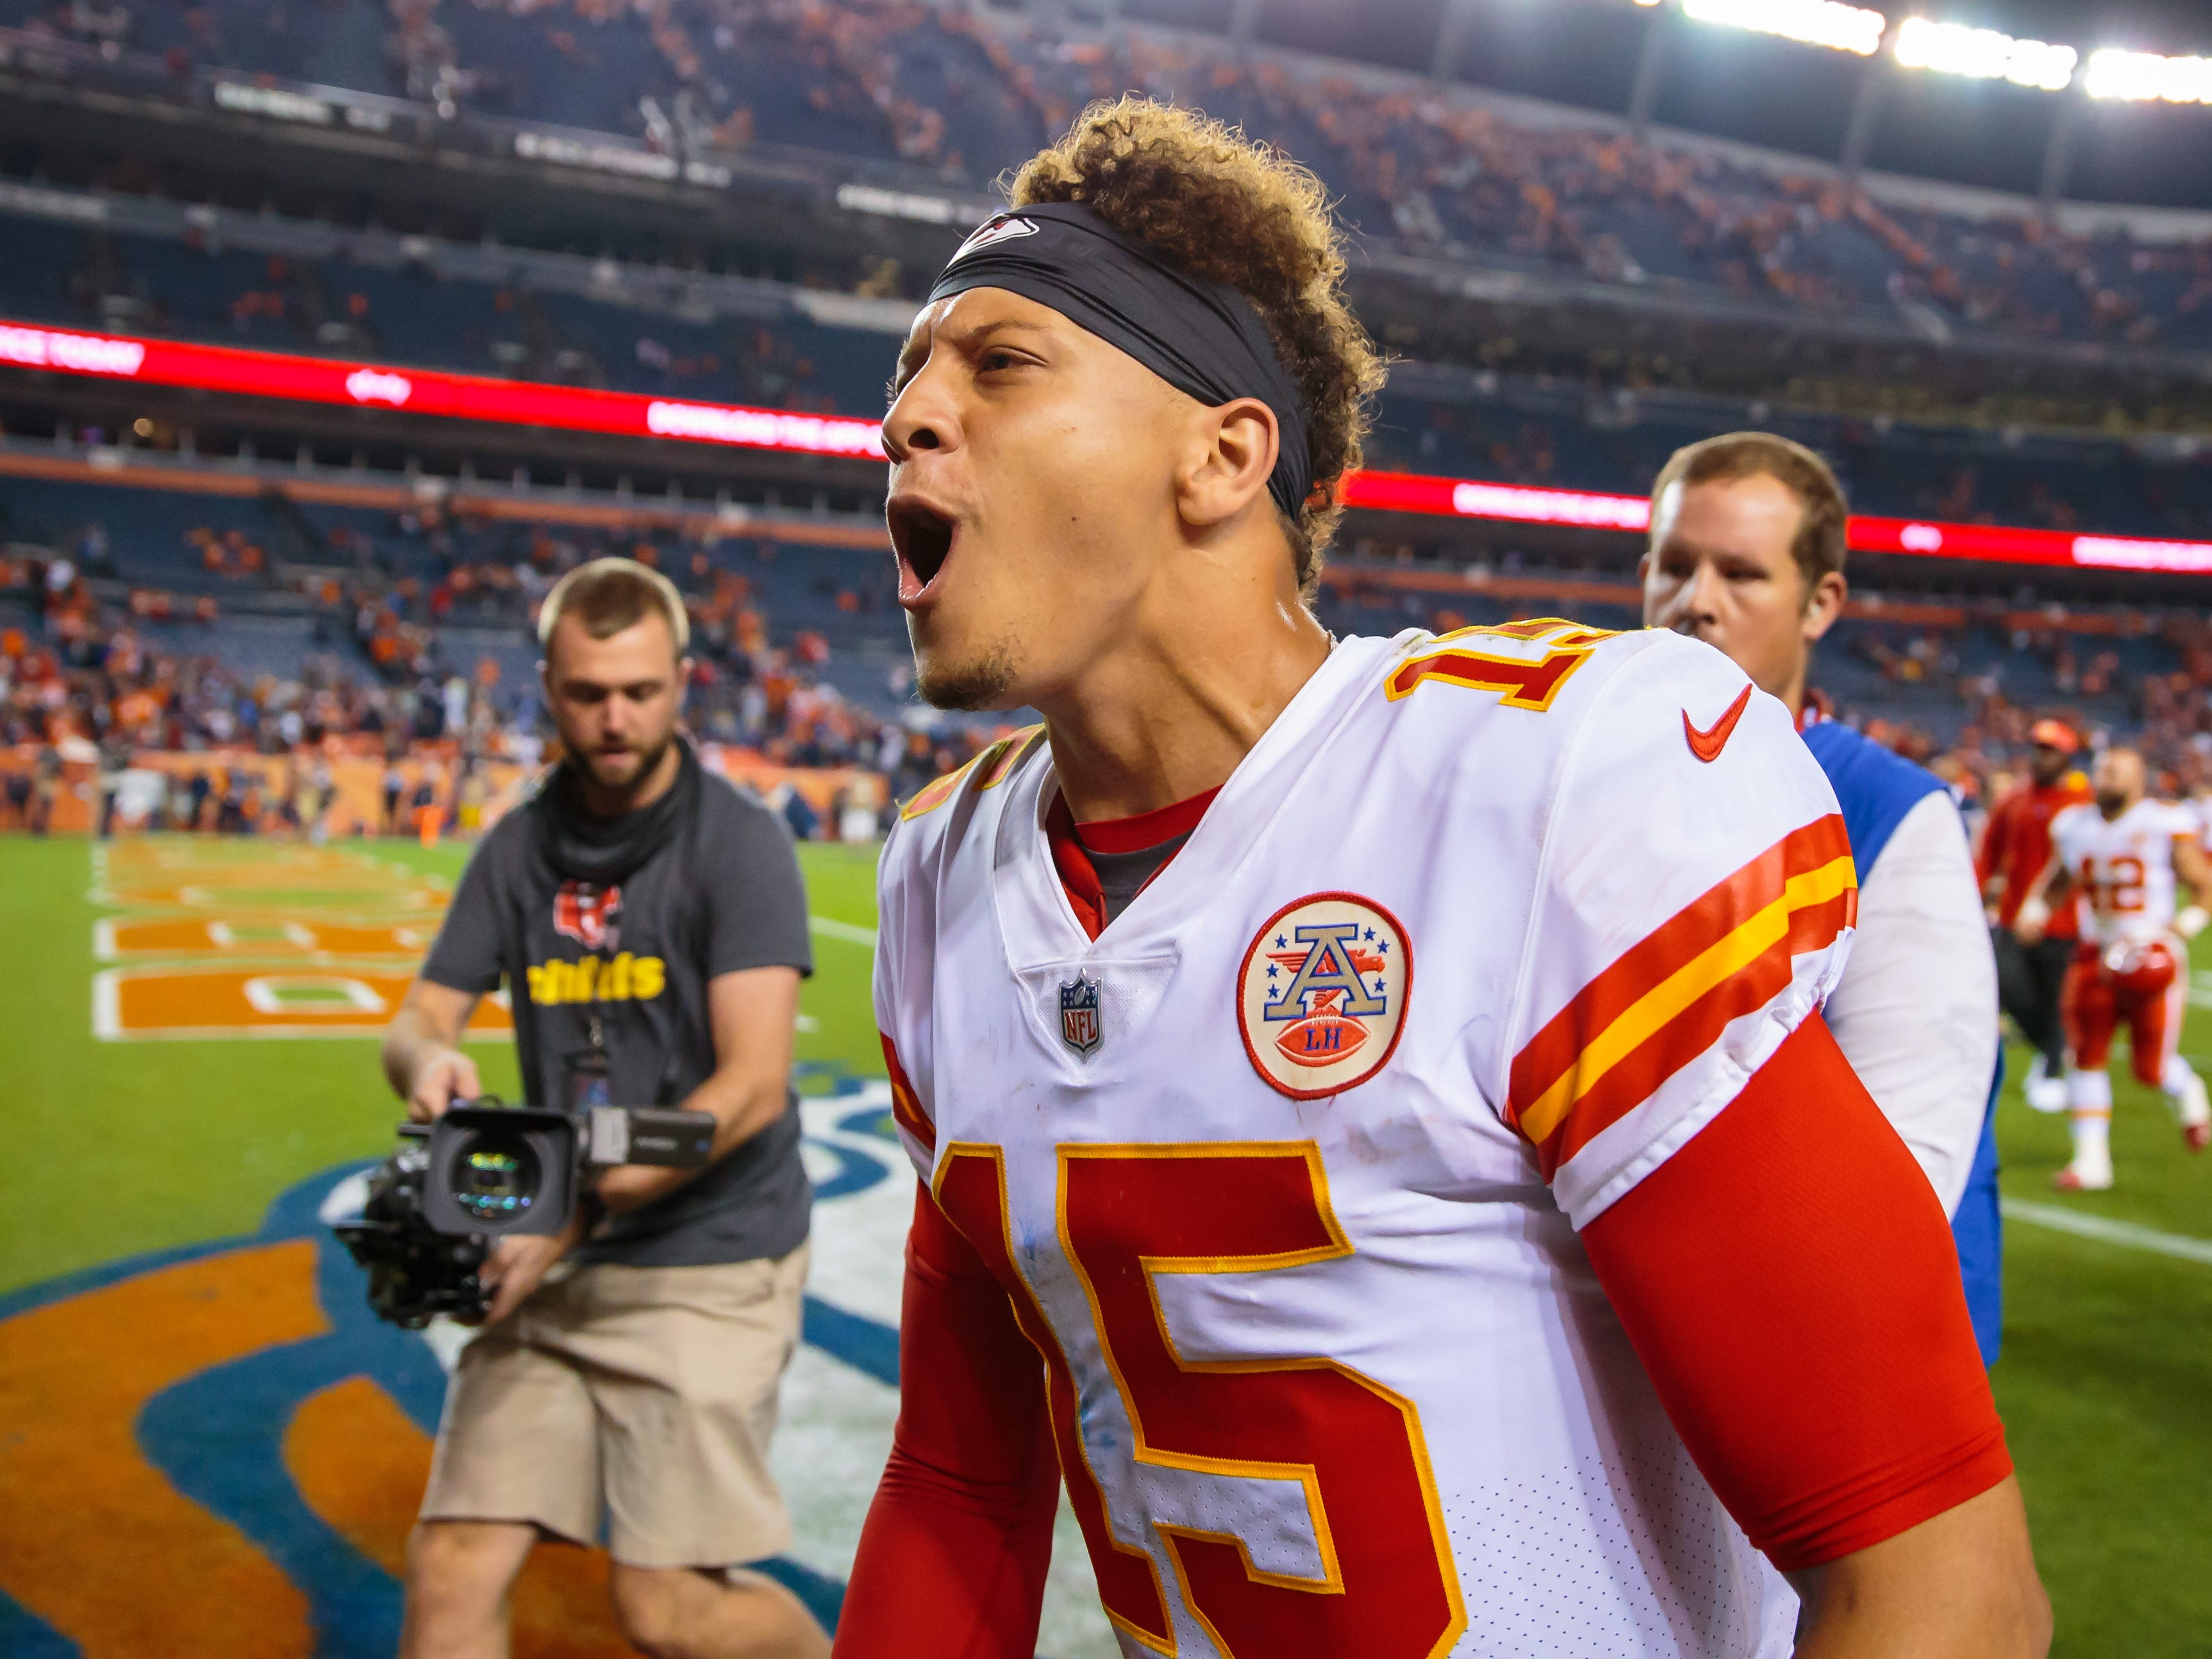 Kansas City Chiefs quarterback Patrick Mahomes celebrates as he leaves the field after defeating the Denver Broncos.